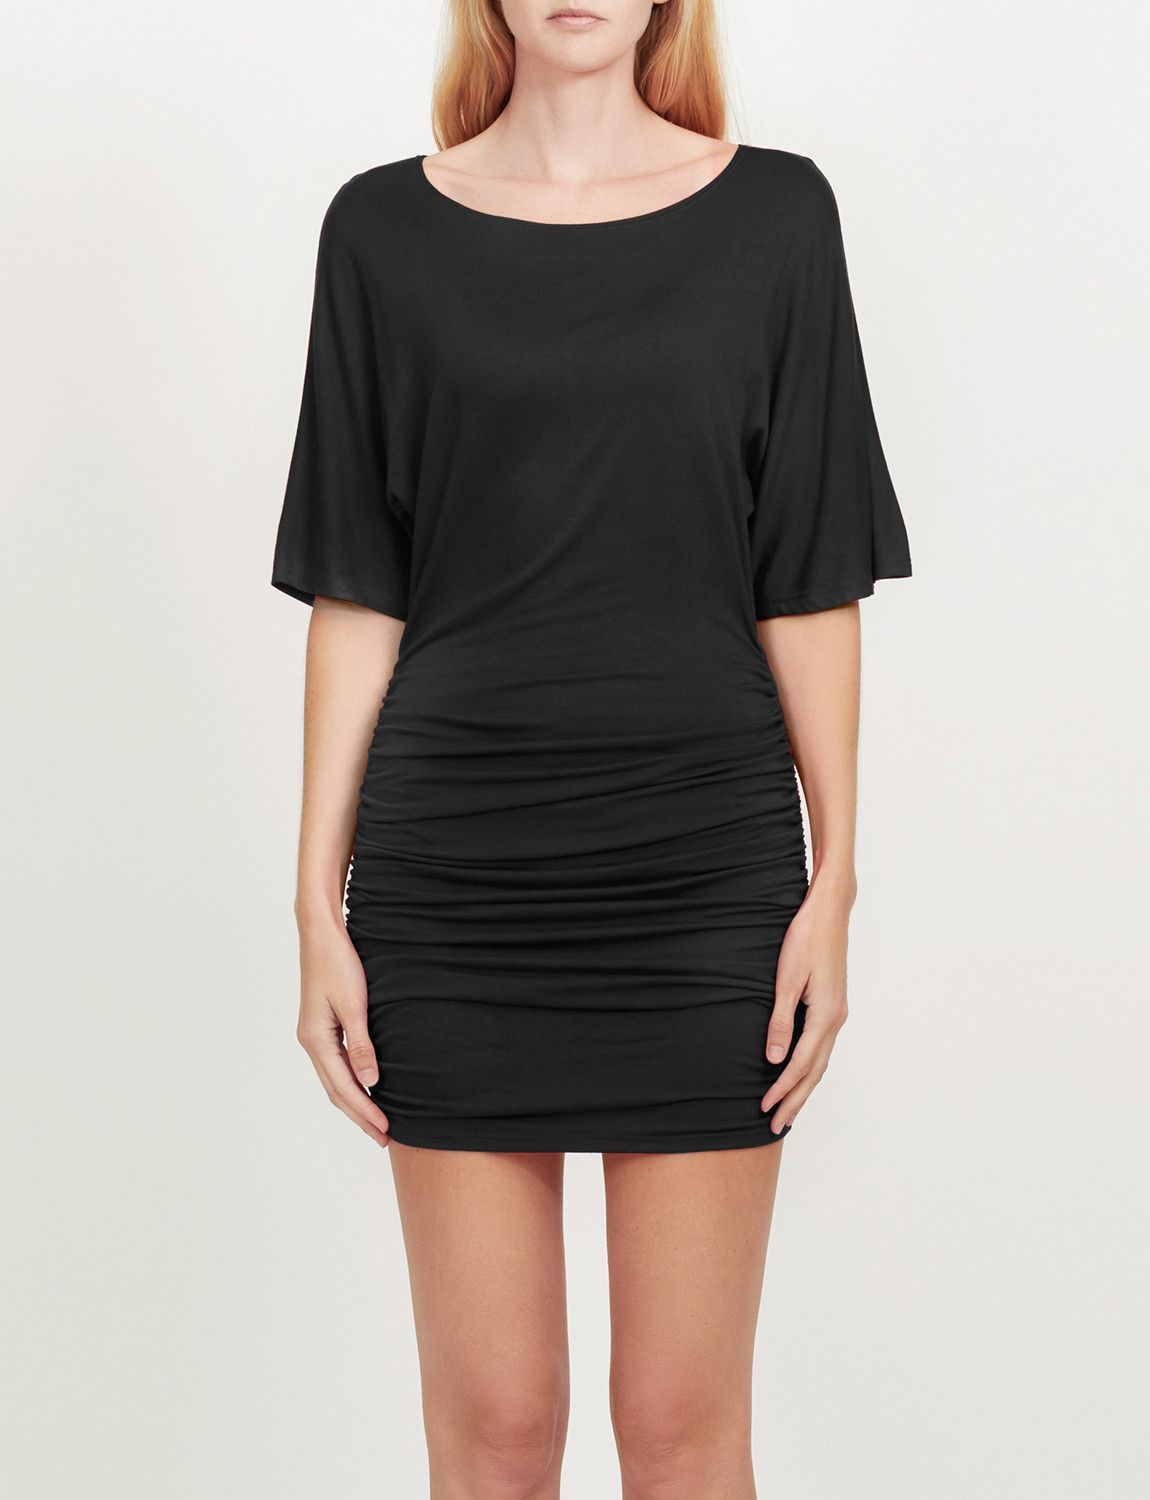 c143521c674e Looking and feeling sexy has never been easier with this stretchy batwing  sleeve scoop neck ruched